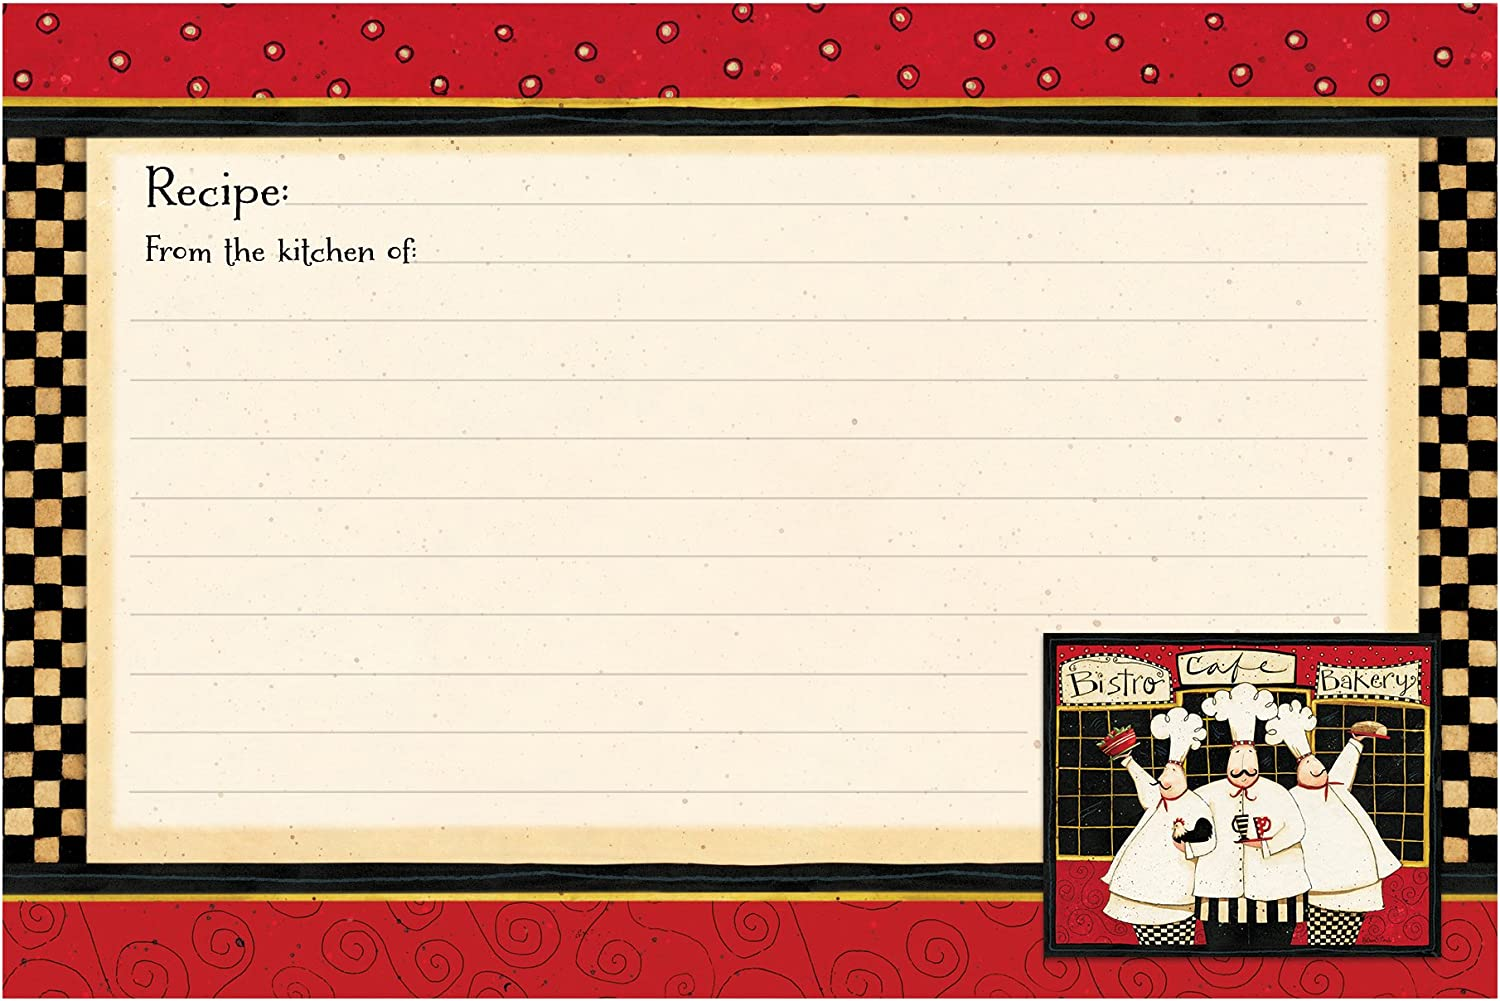 36-Count Red Bistro Chef Brownlow Gifts 4 x 6 Lined Recipe Cards